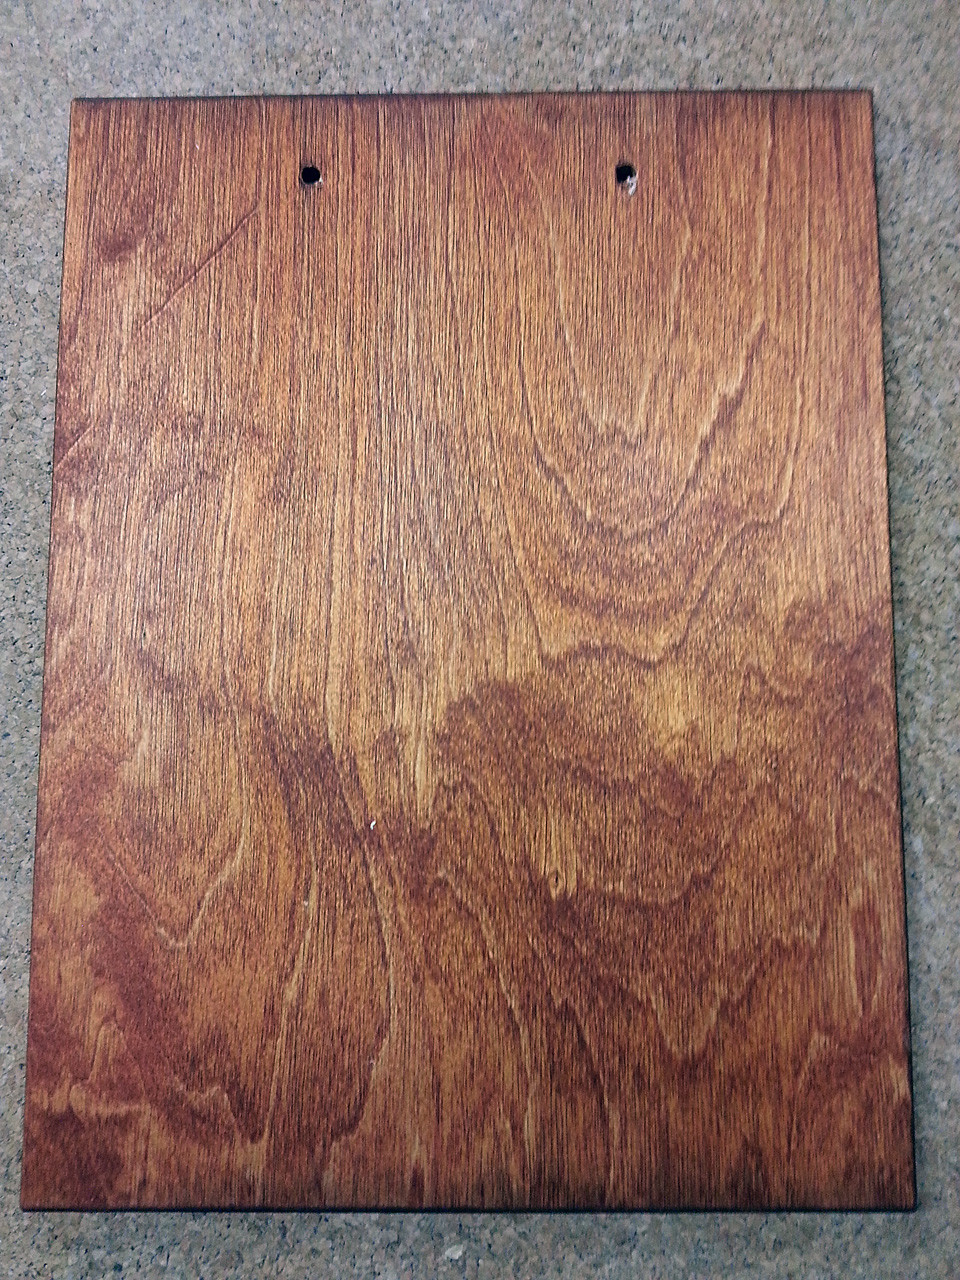 hardwood flooring boise idaho of inspiration west wind hardwood inside menu boards alaska